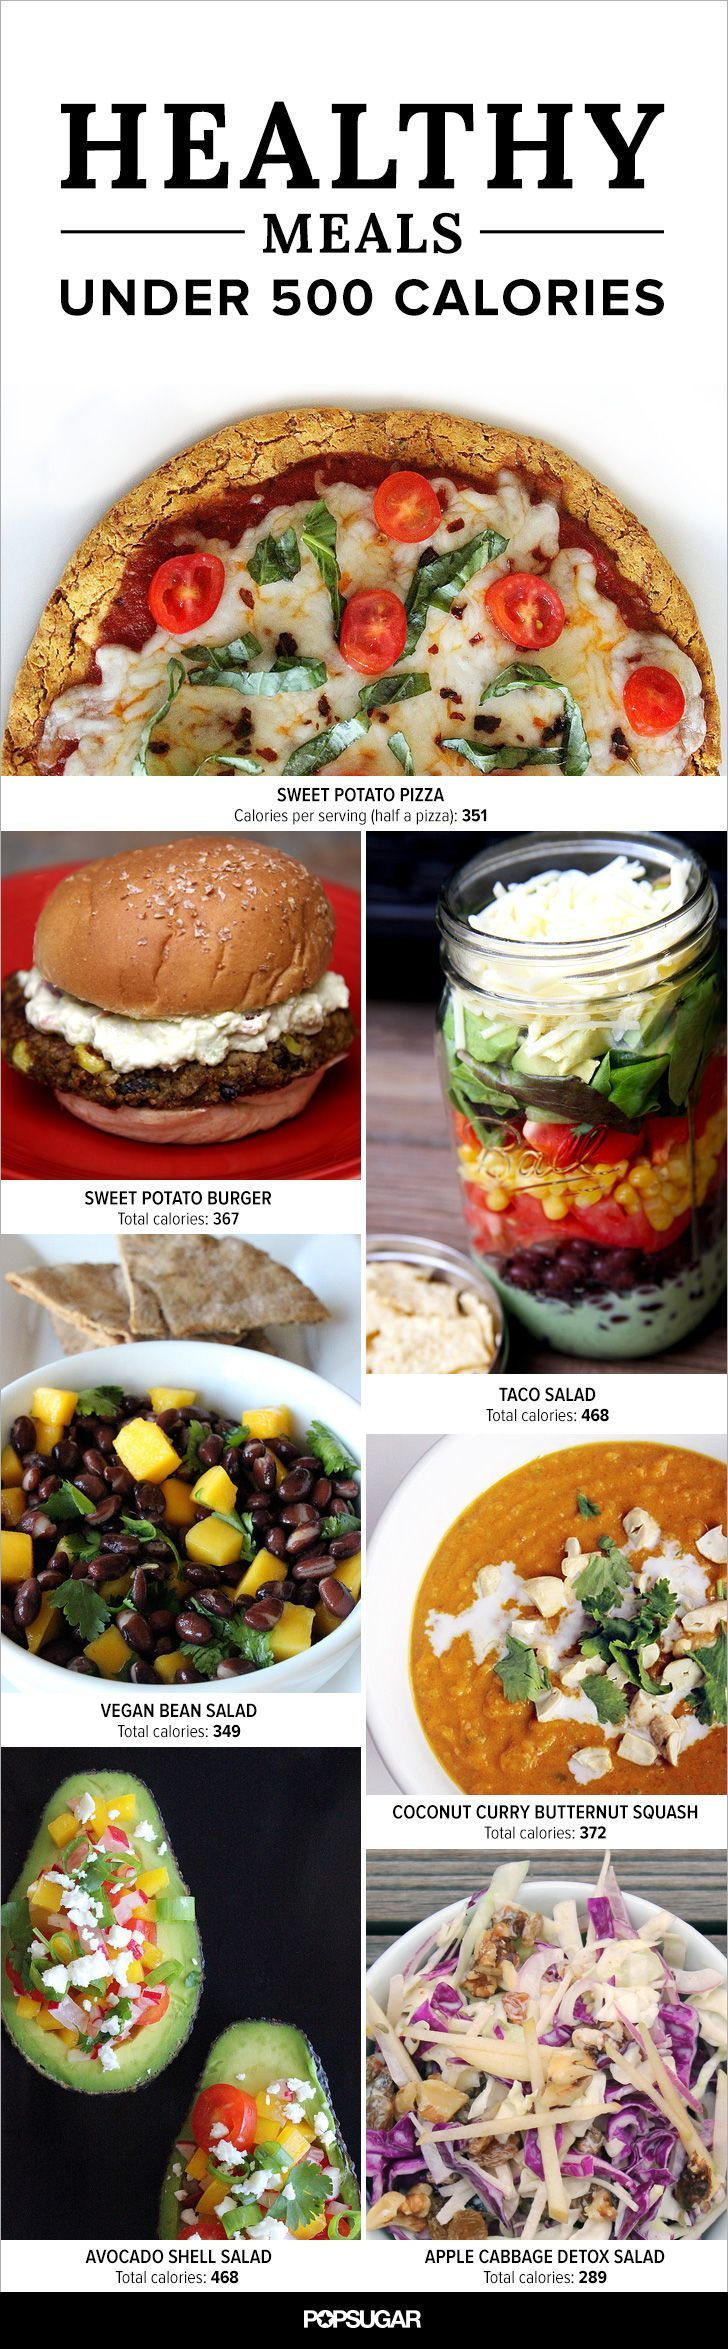 Each of these comforting and filling meals is well under 500 calories, meaning you'll be full and satisfied afterward without sacrificing weight-loss goals.